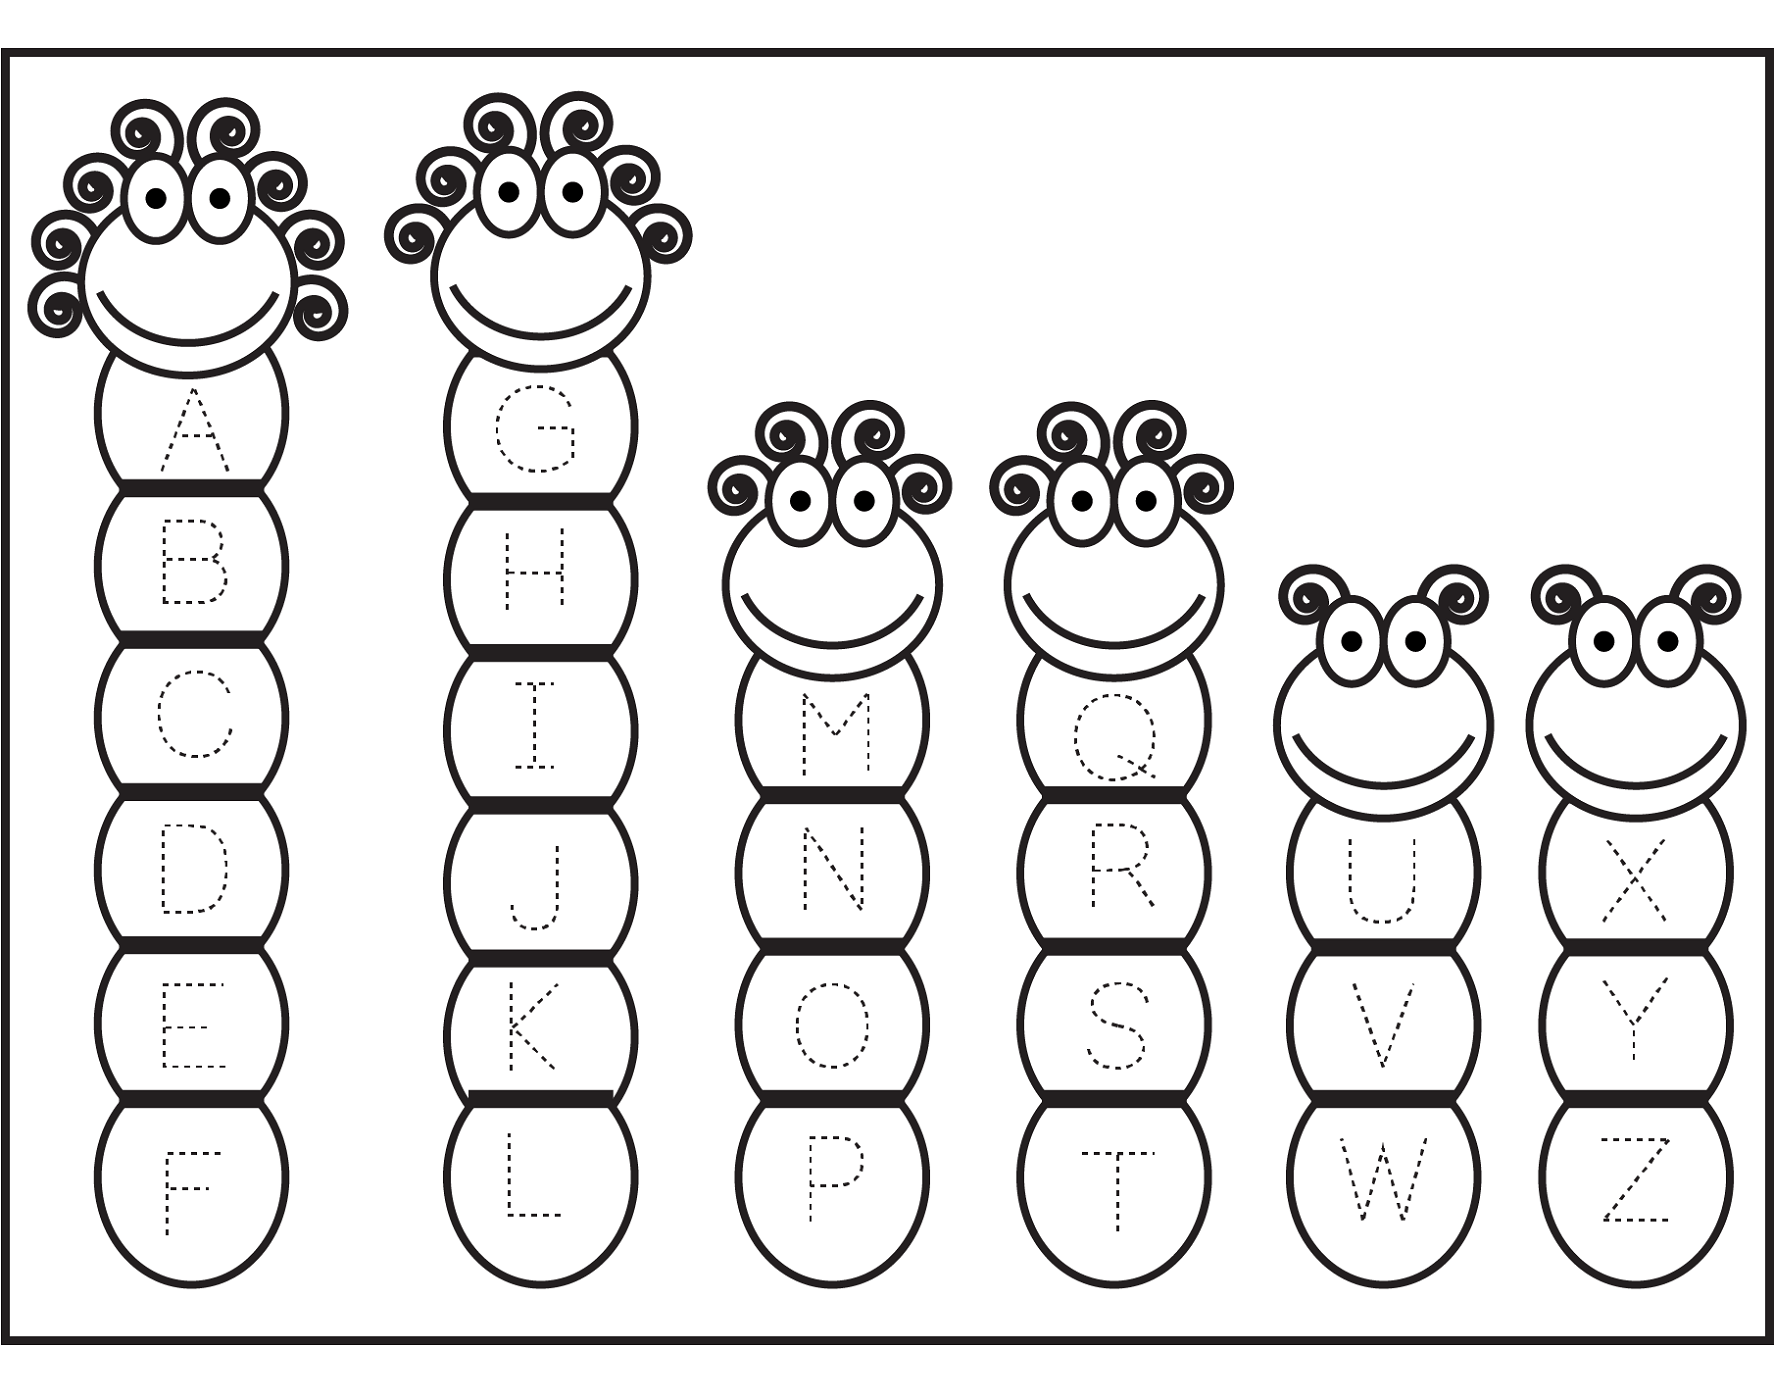 Printable Abc Traceable Worksheets